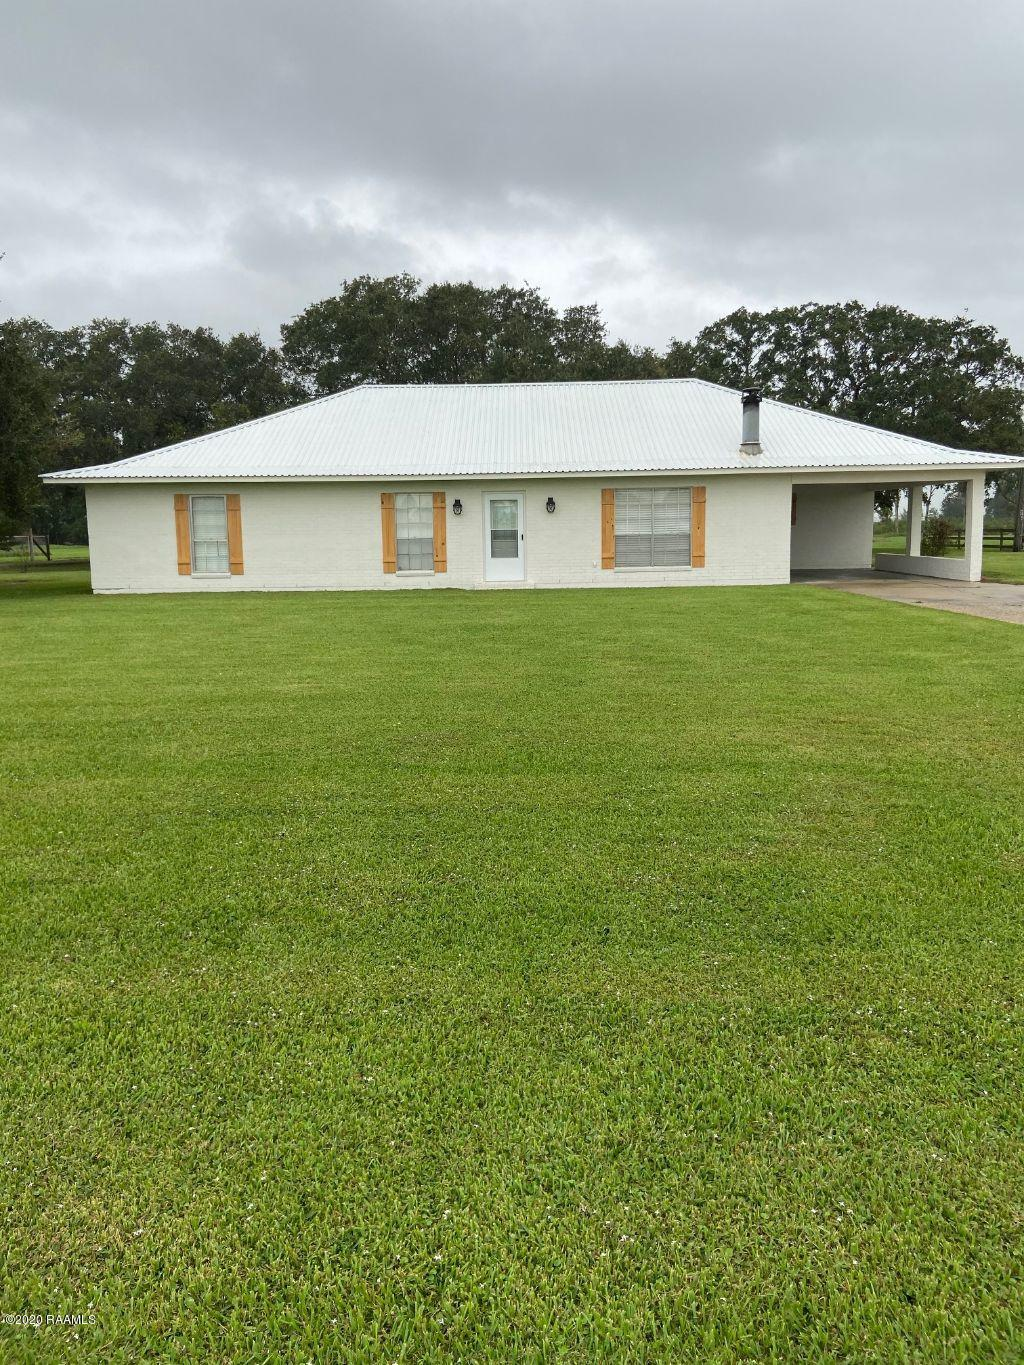 11614 Hwy 697, Maurice, LA 70555 Photo #1